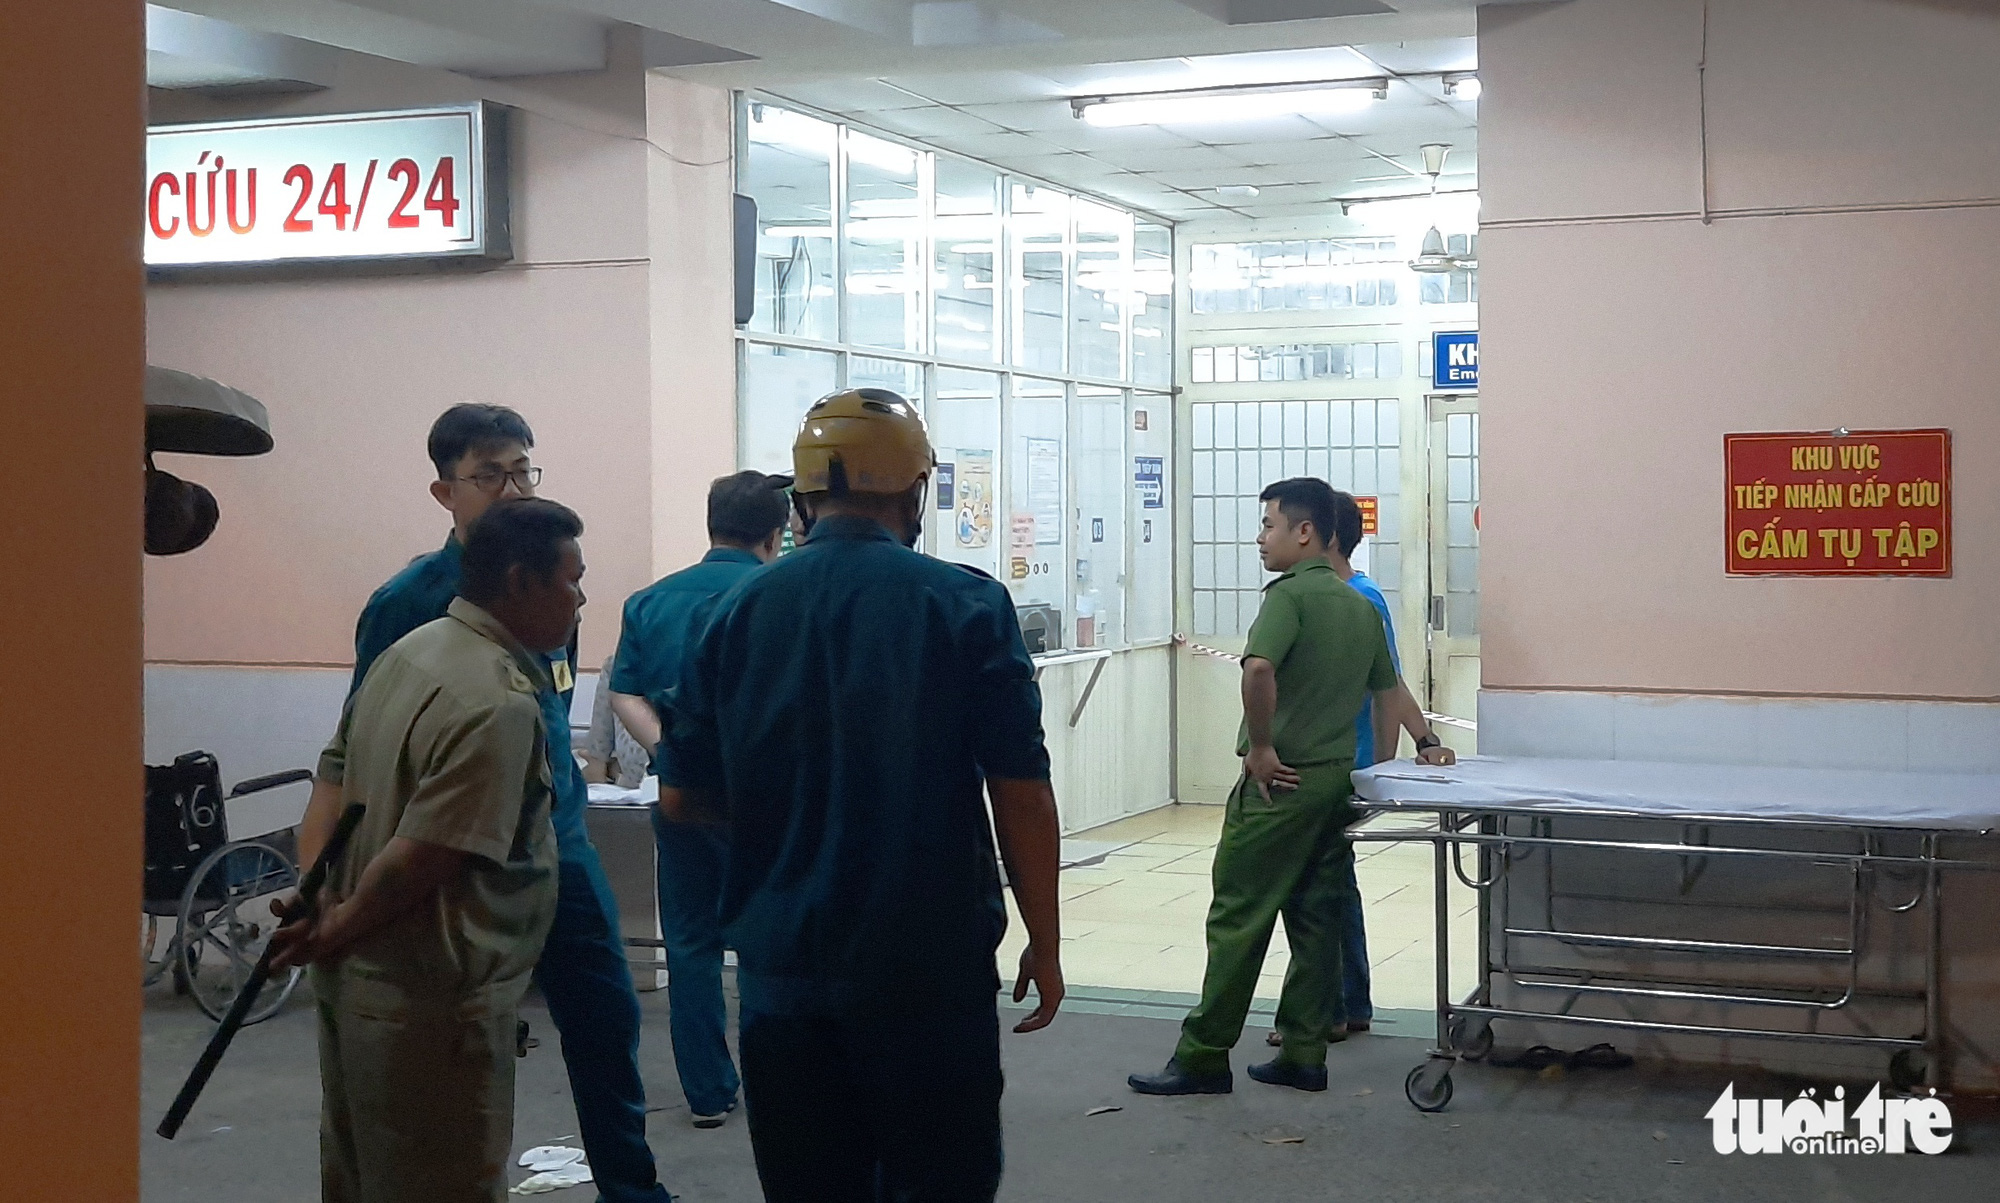 Man attempts suicide by gunshot to head following hospital admission in Ho Chi Minh City